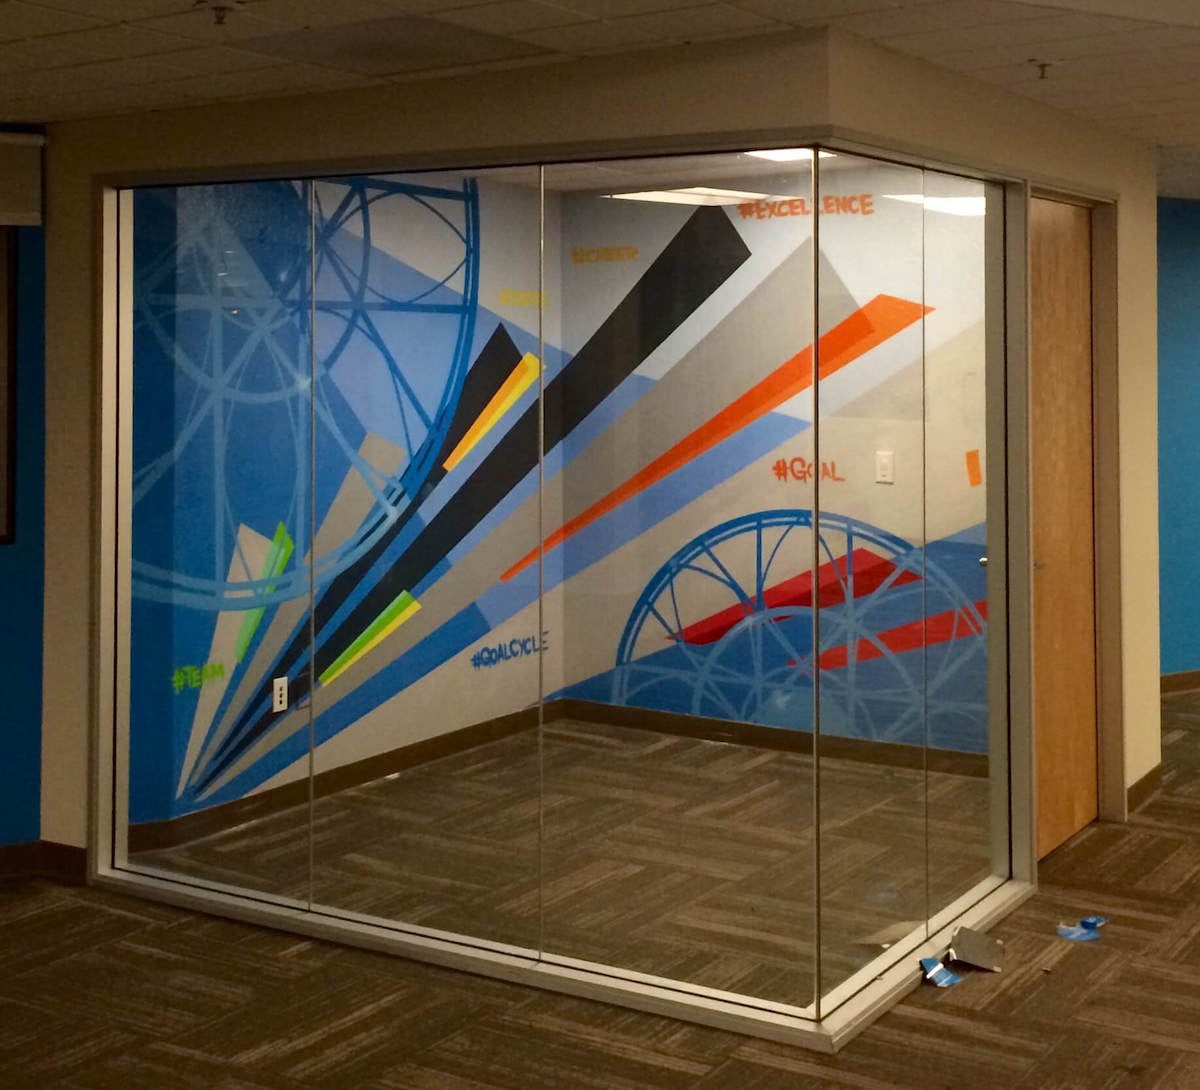 Commissioned Office Mural 2 for Betterworks | Redwood City USA, 2015